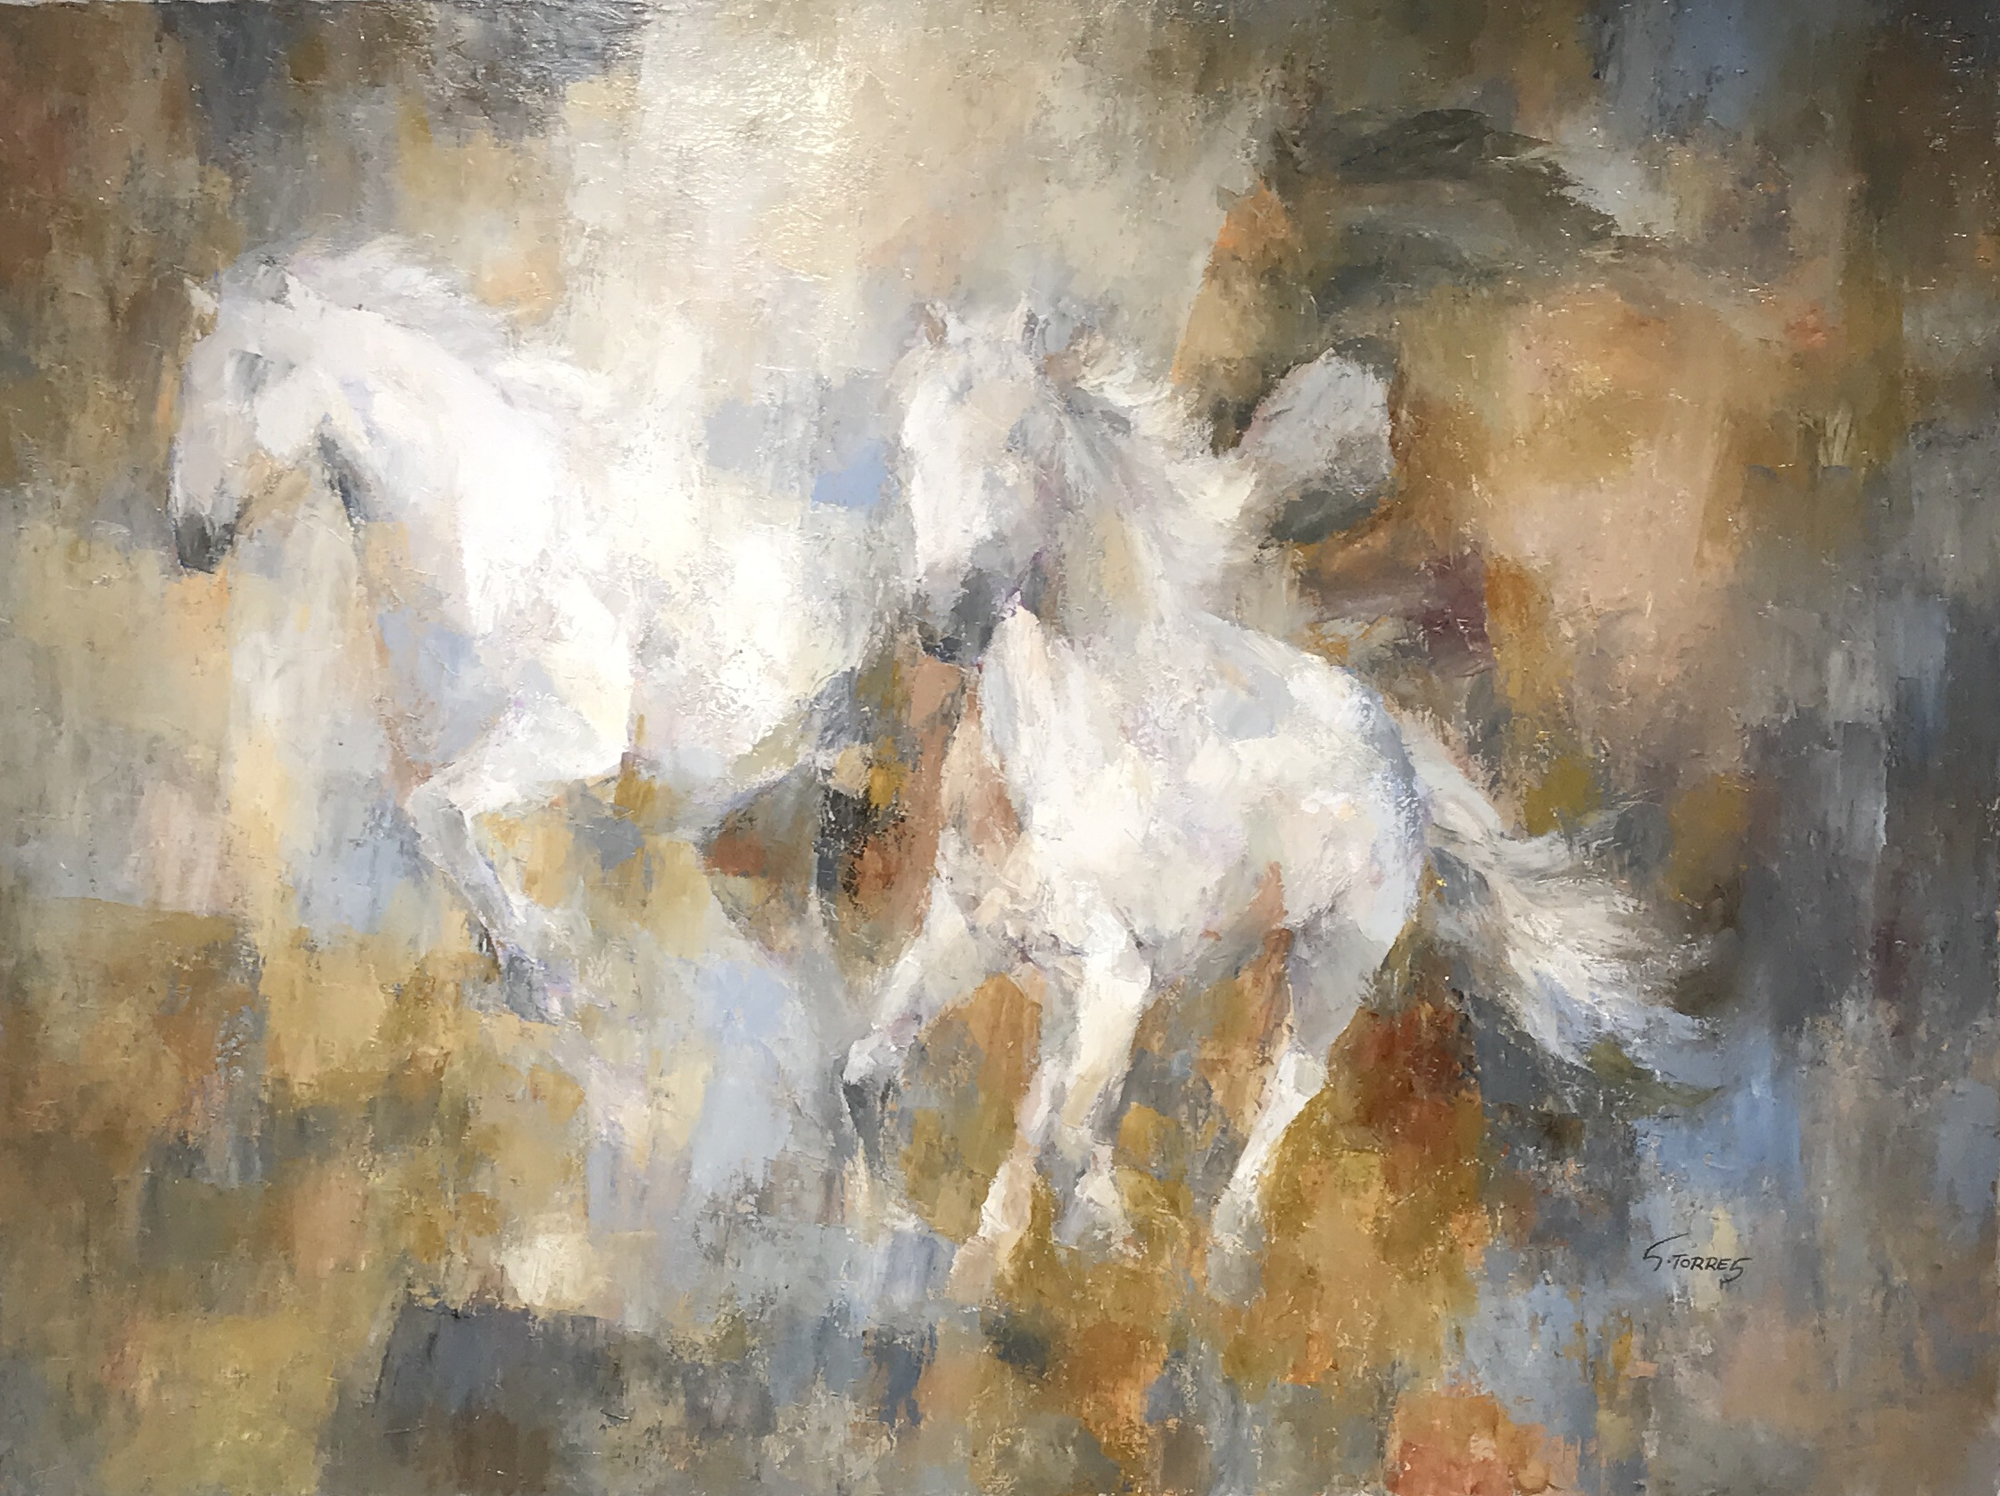 THREE HORSES IN GOLDS AND BROWNS by S TORRES